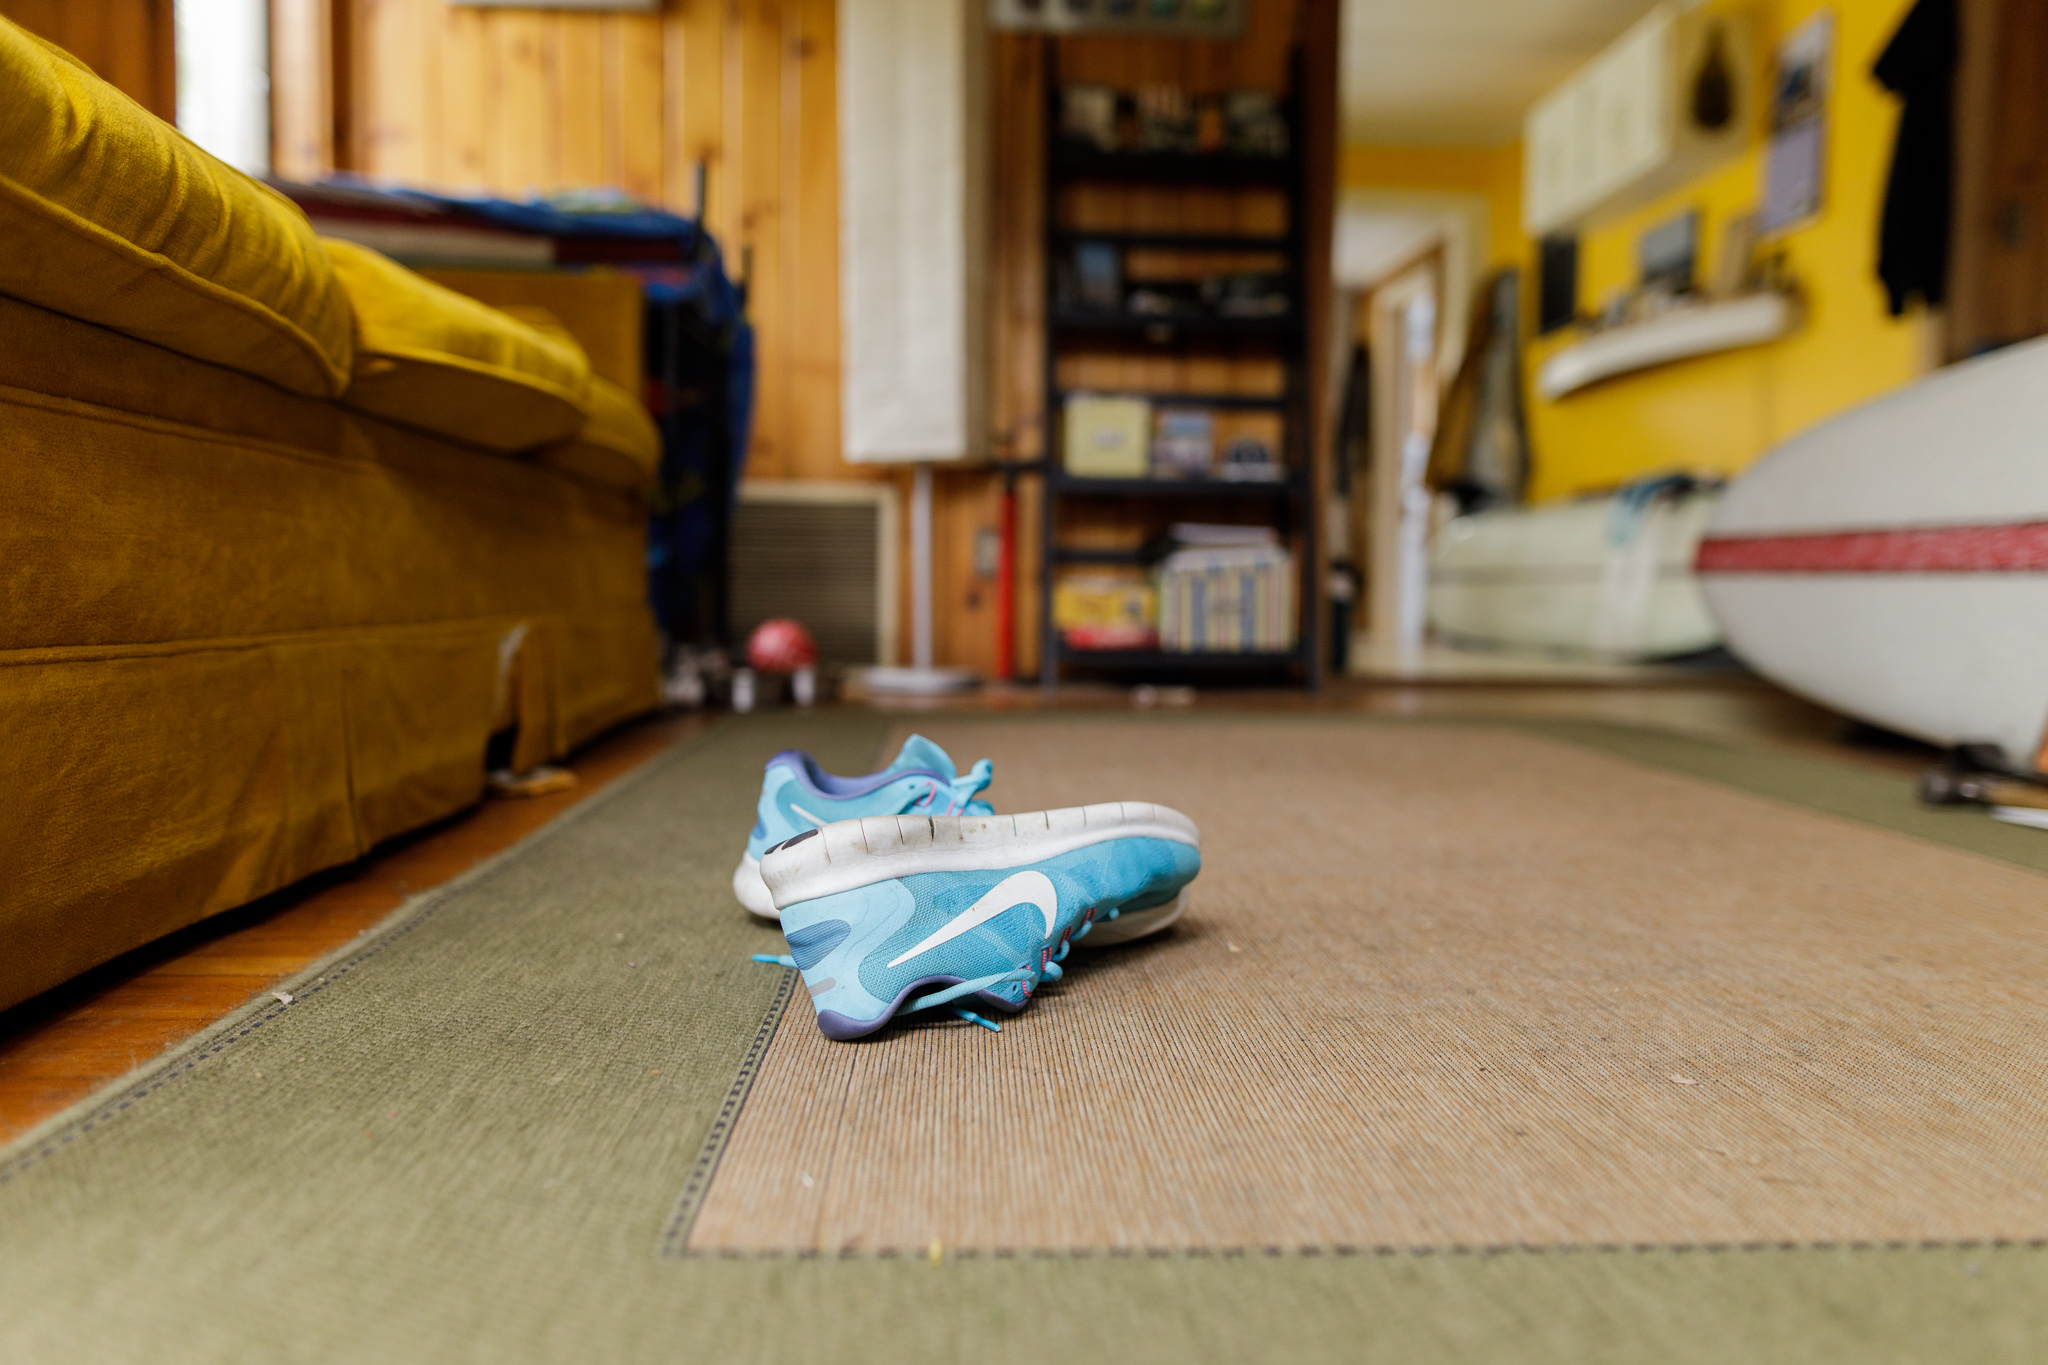 Nike sneakers on a living room rug